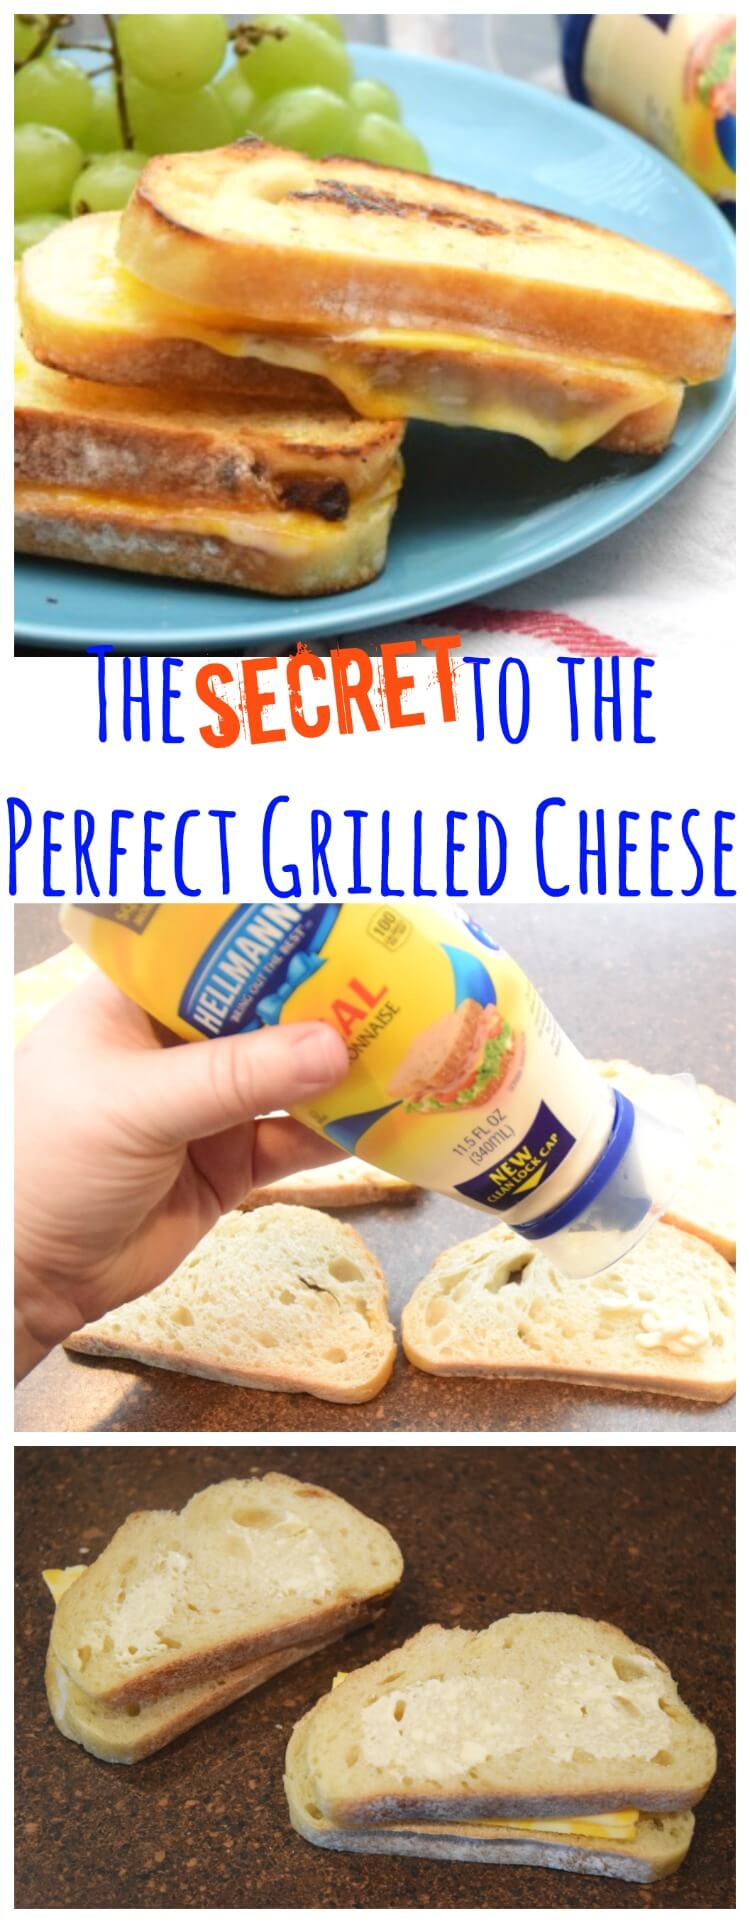 #MakeMoreofMealtime w/ Hellmann's for the perfect grilled cheese! #ad #food #yum